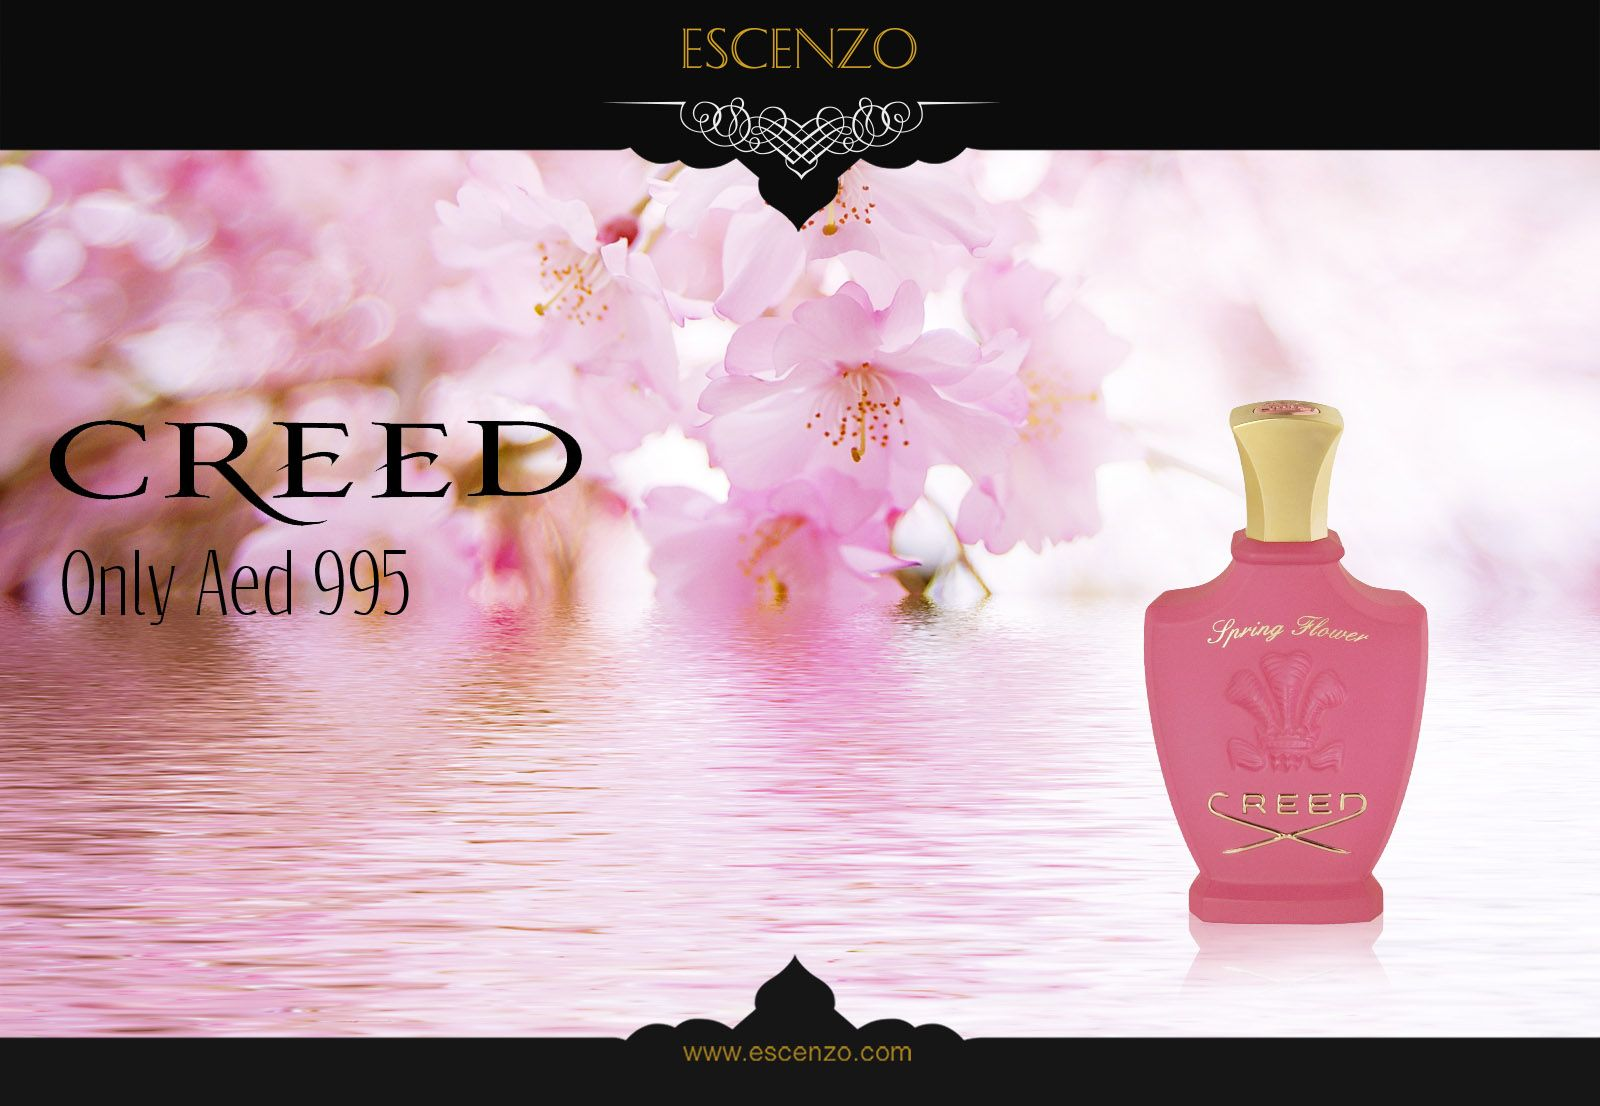 Pin By Escenzo On Creed Perfumes Pinterest Creed Perfume And Perfume